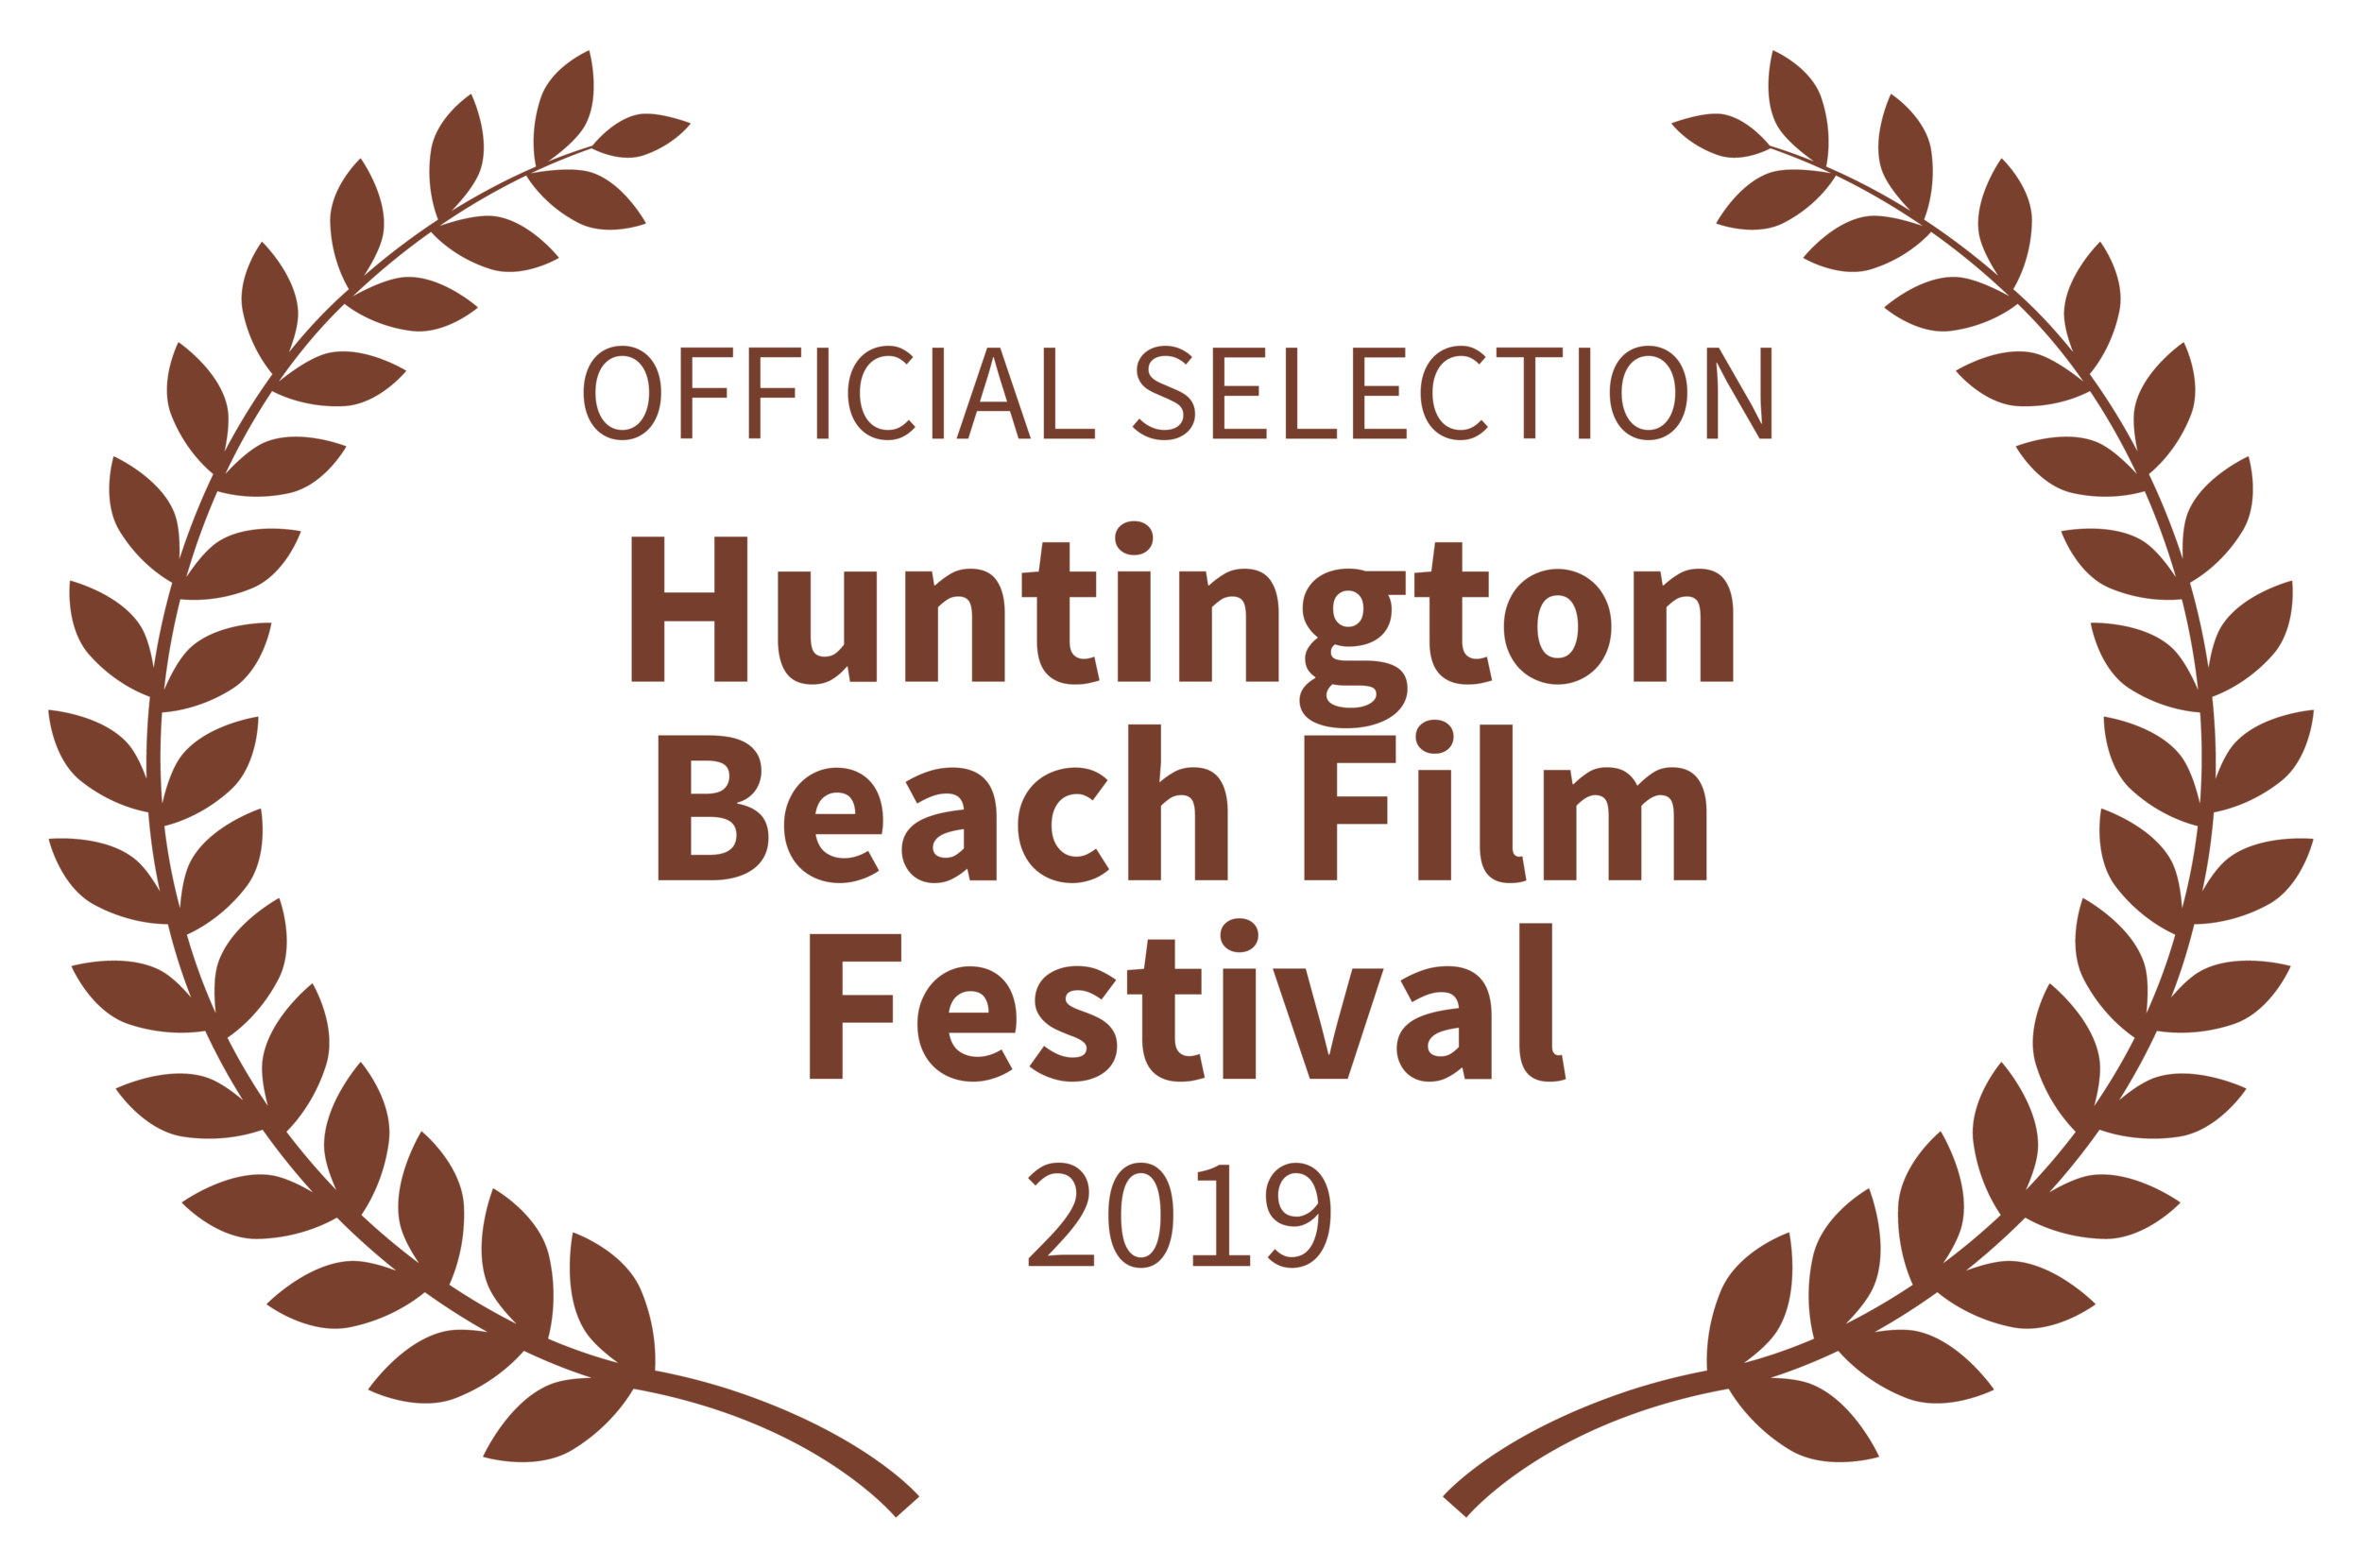 HuntingtonBeachFilmFestival-2019 OFFICIALSELECTION-.png